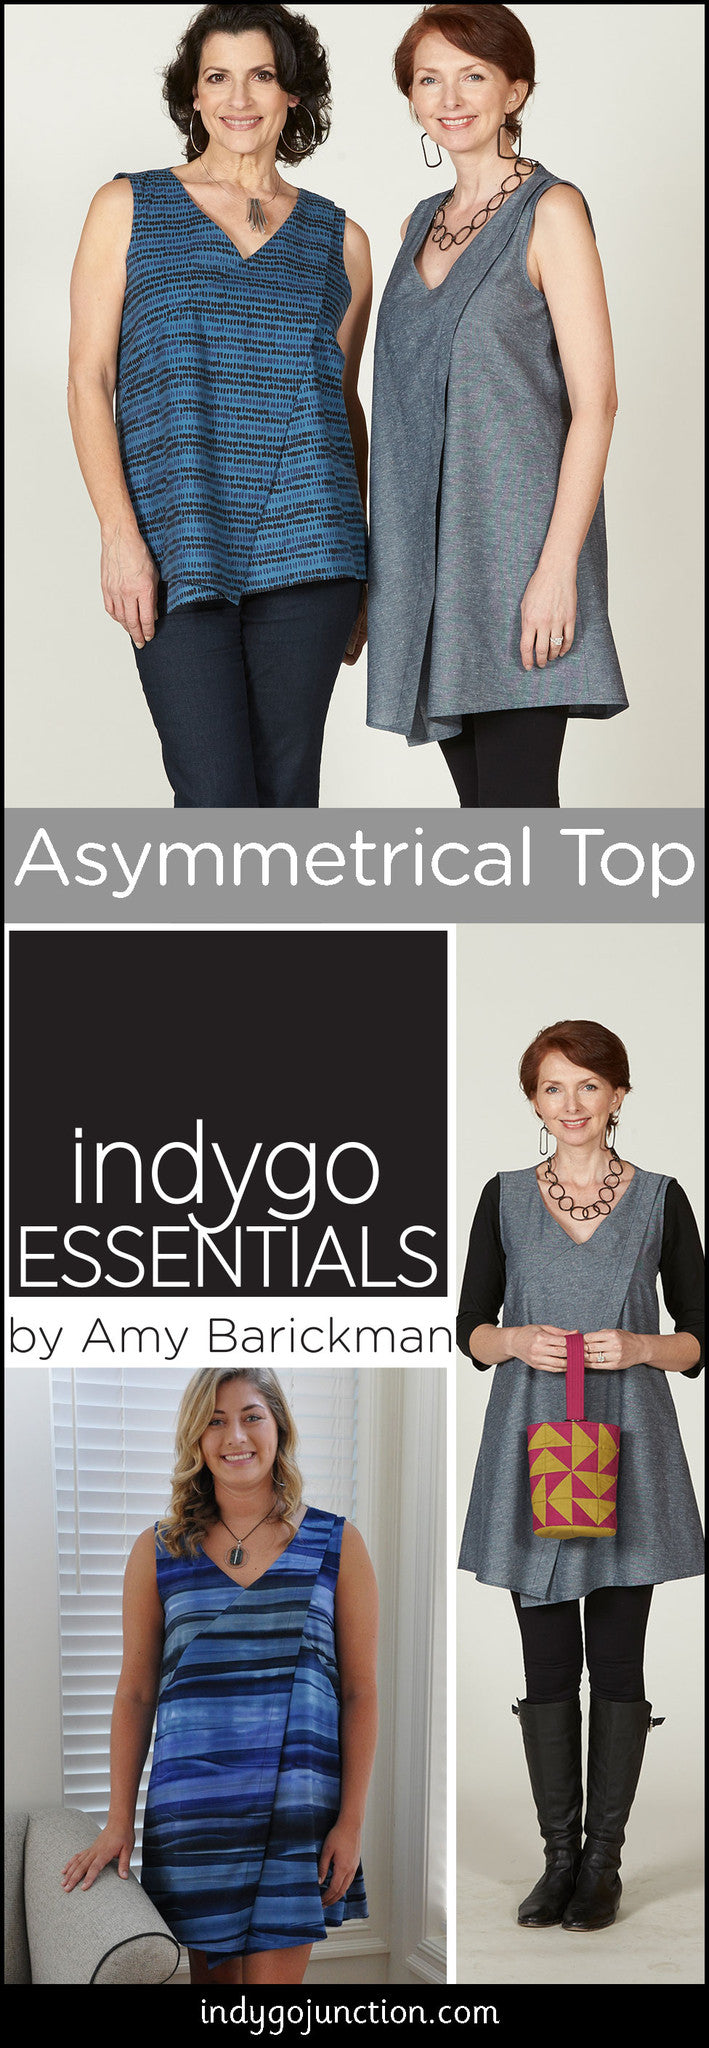 Indygo Essentials Asymmetrical Top and Tunic Pattern!